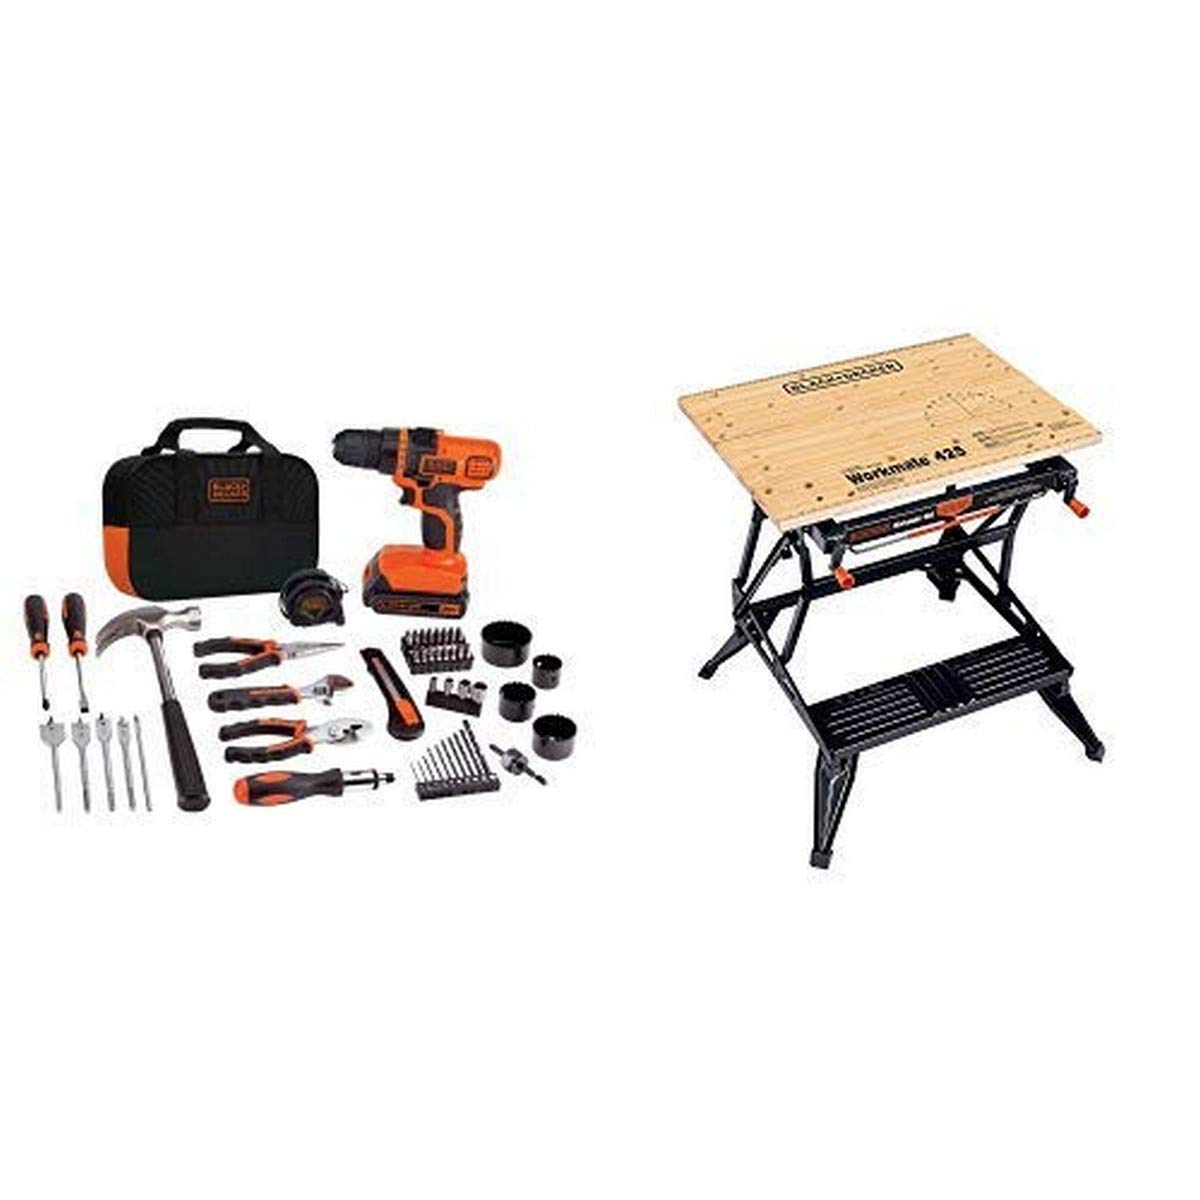 BLACK+DECKER 20V MAX Drill & Home Tool Kit, 68 Piece (LDX120PK) with BLACK+DECKER WM425-A Portable Project Center and Vise